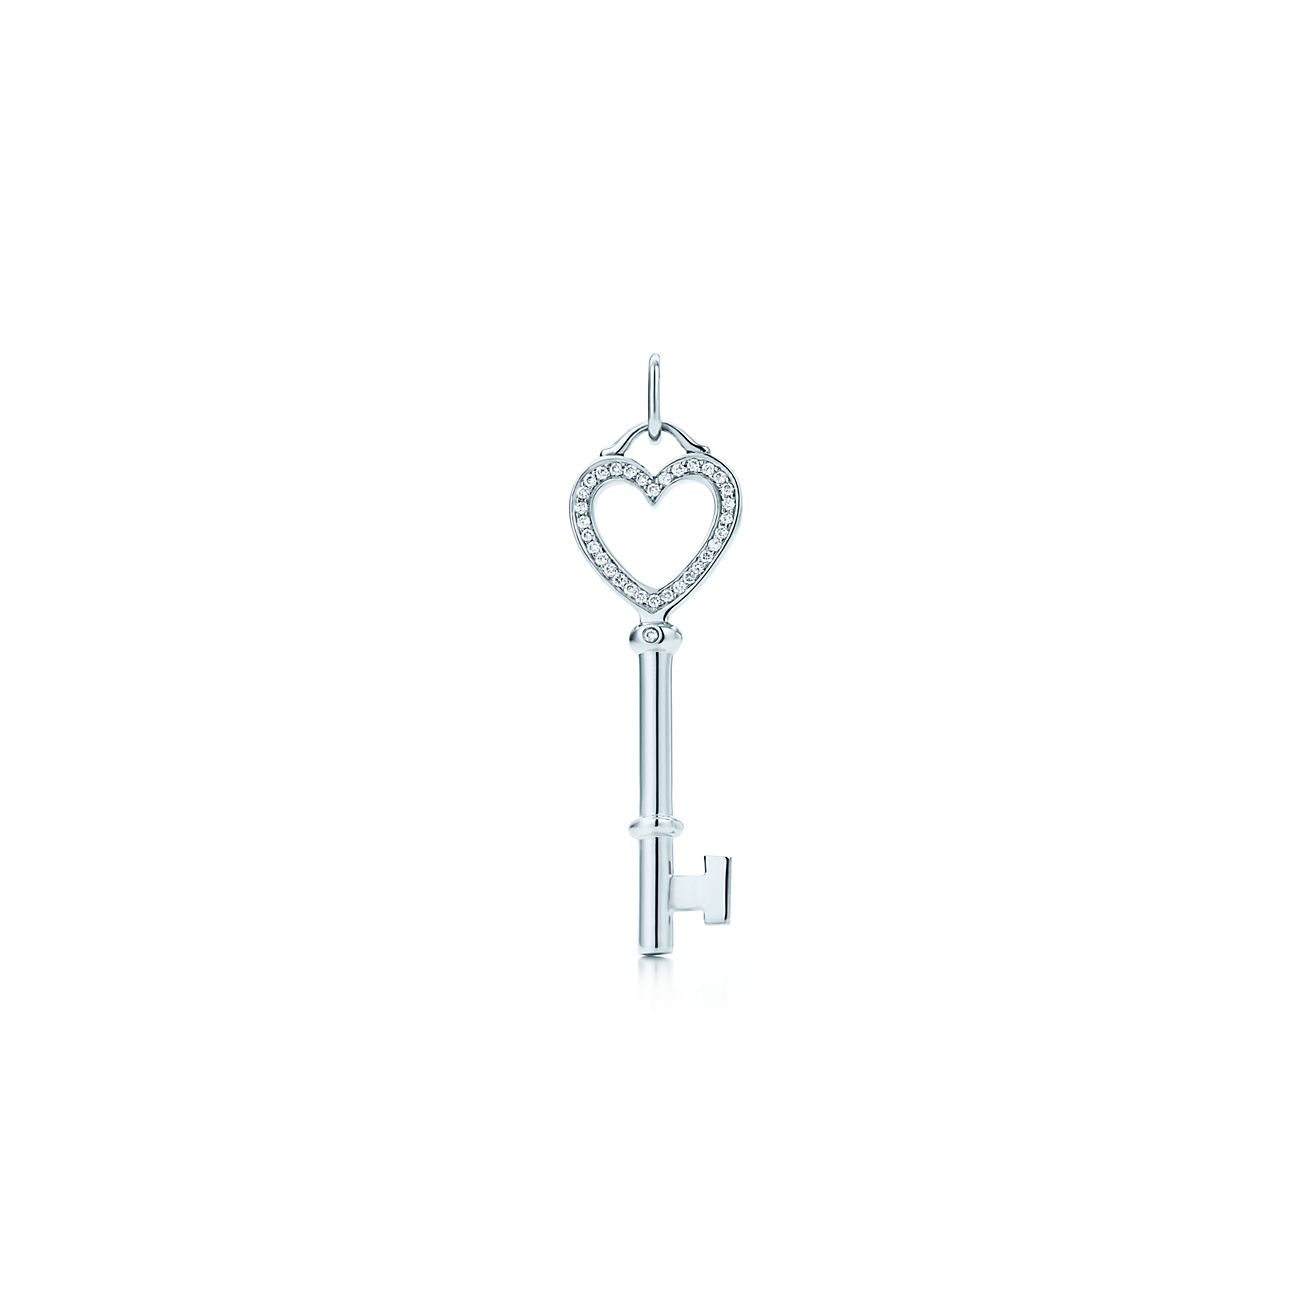 Tiffany keys heart key pendant in 18k white gold with diamonds tiffany keysheart key pendant aloadofball Gallery